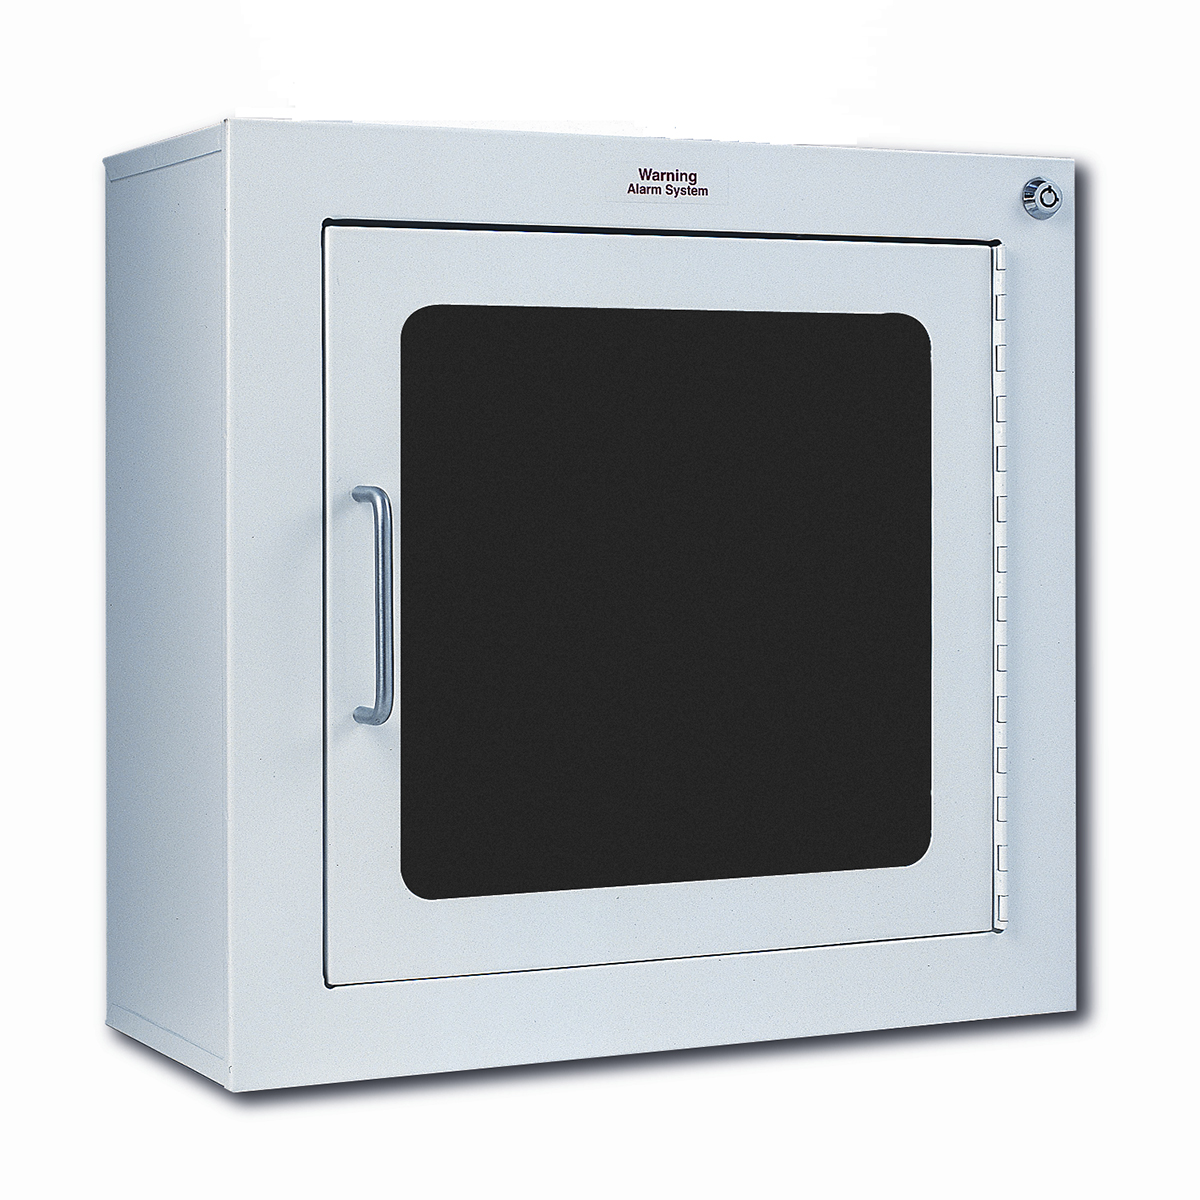 Zoll® Surface Wall Mounting Defibrillator Cabinet with Alarm